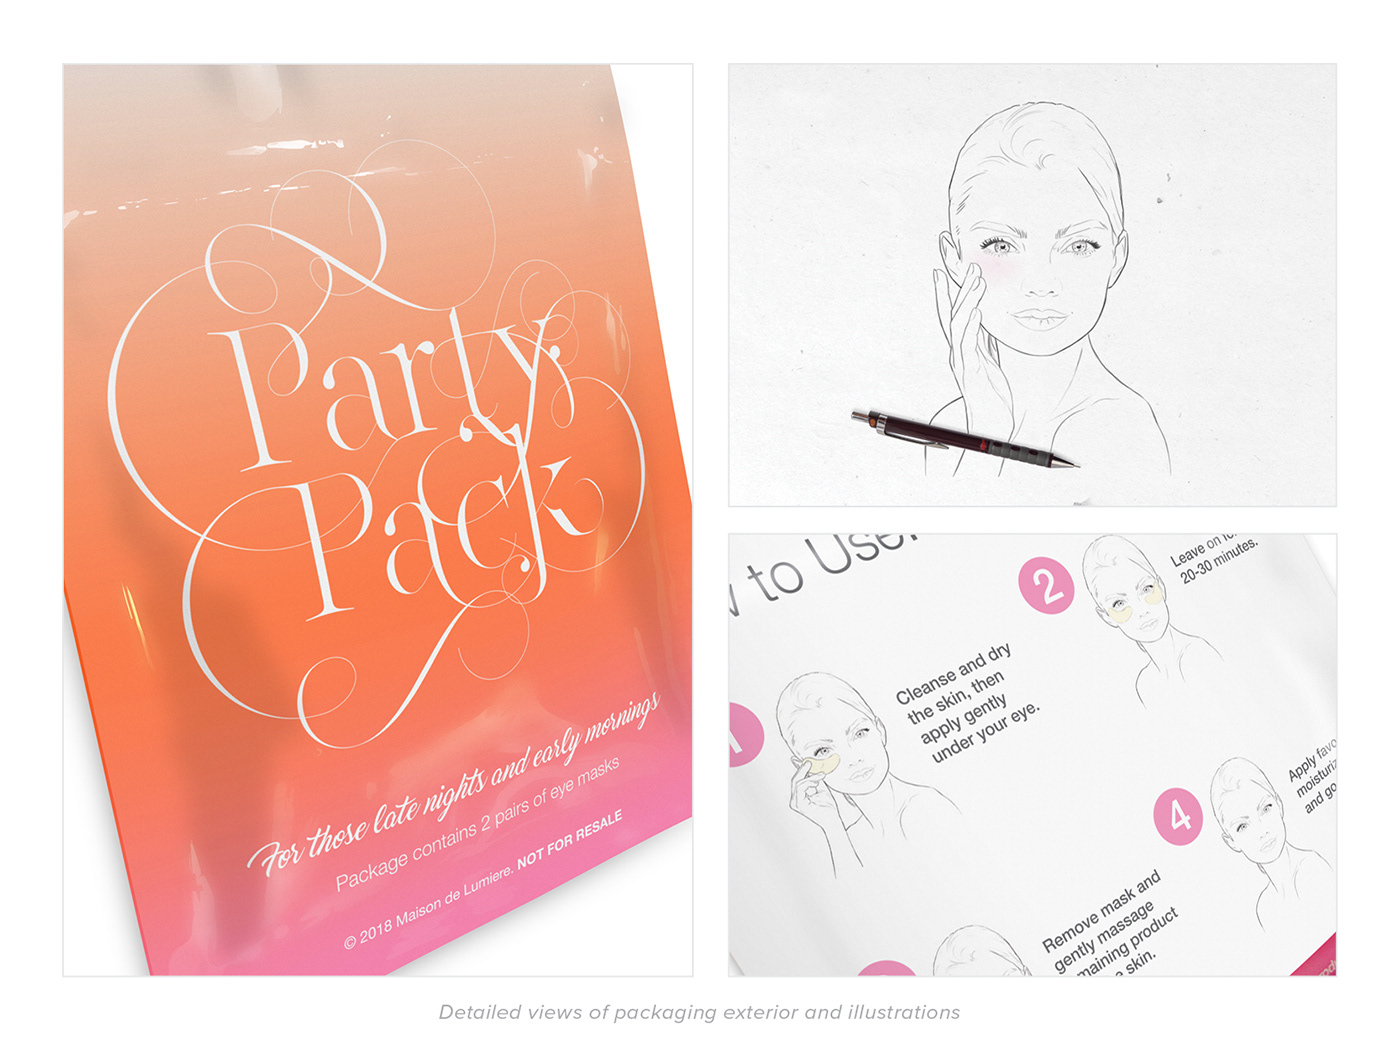 product beauty Packaging graphic design  ILLUSTRATION  Promotional